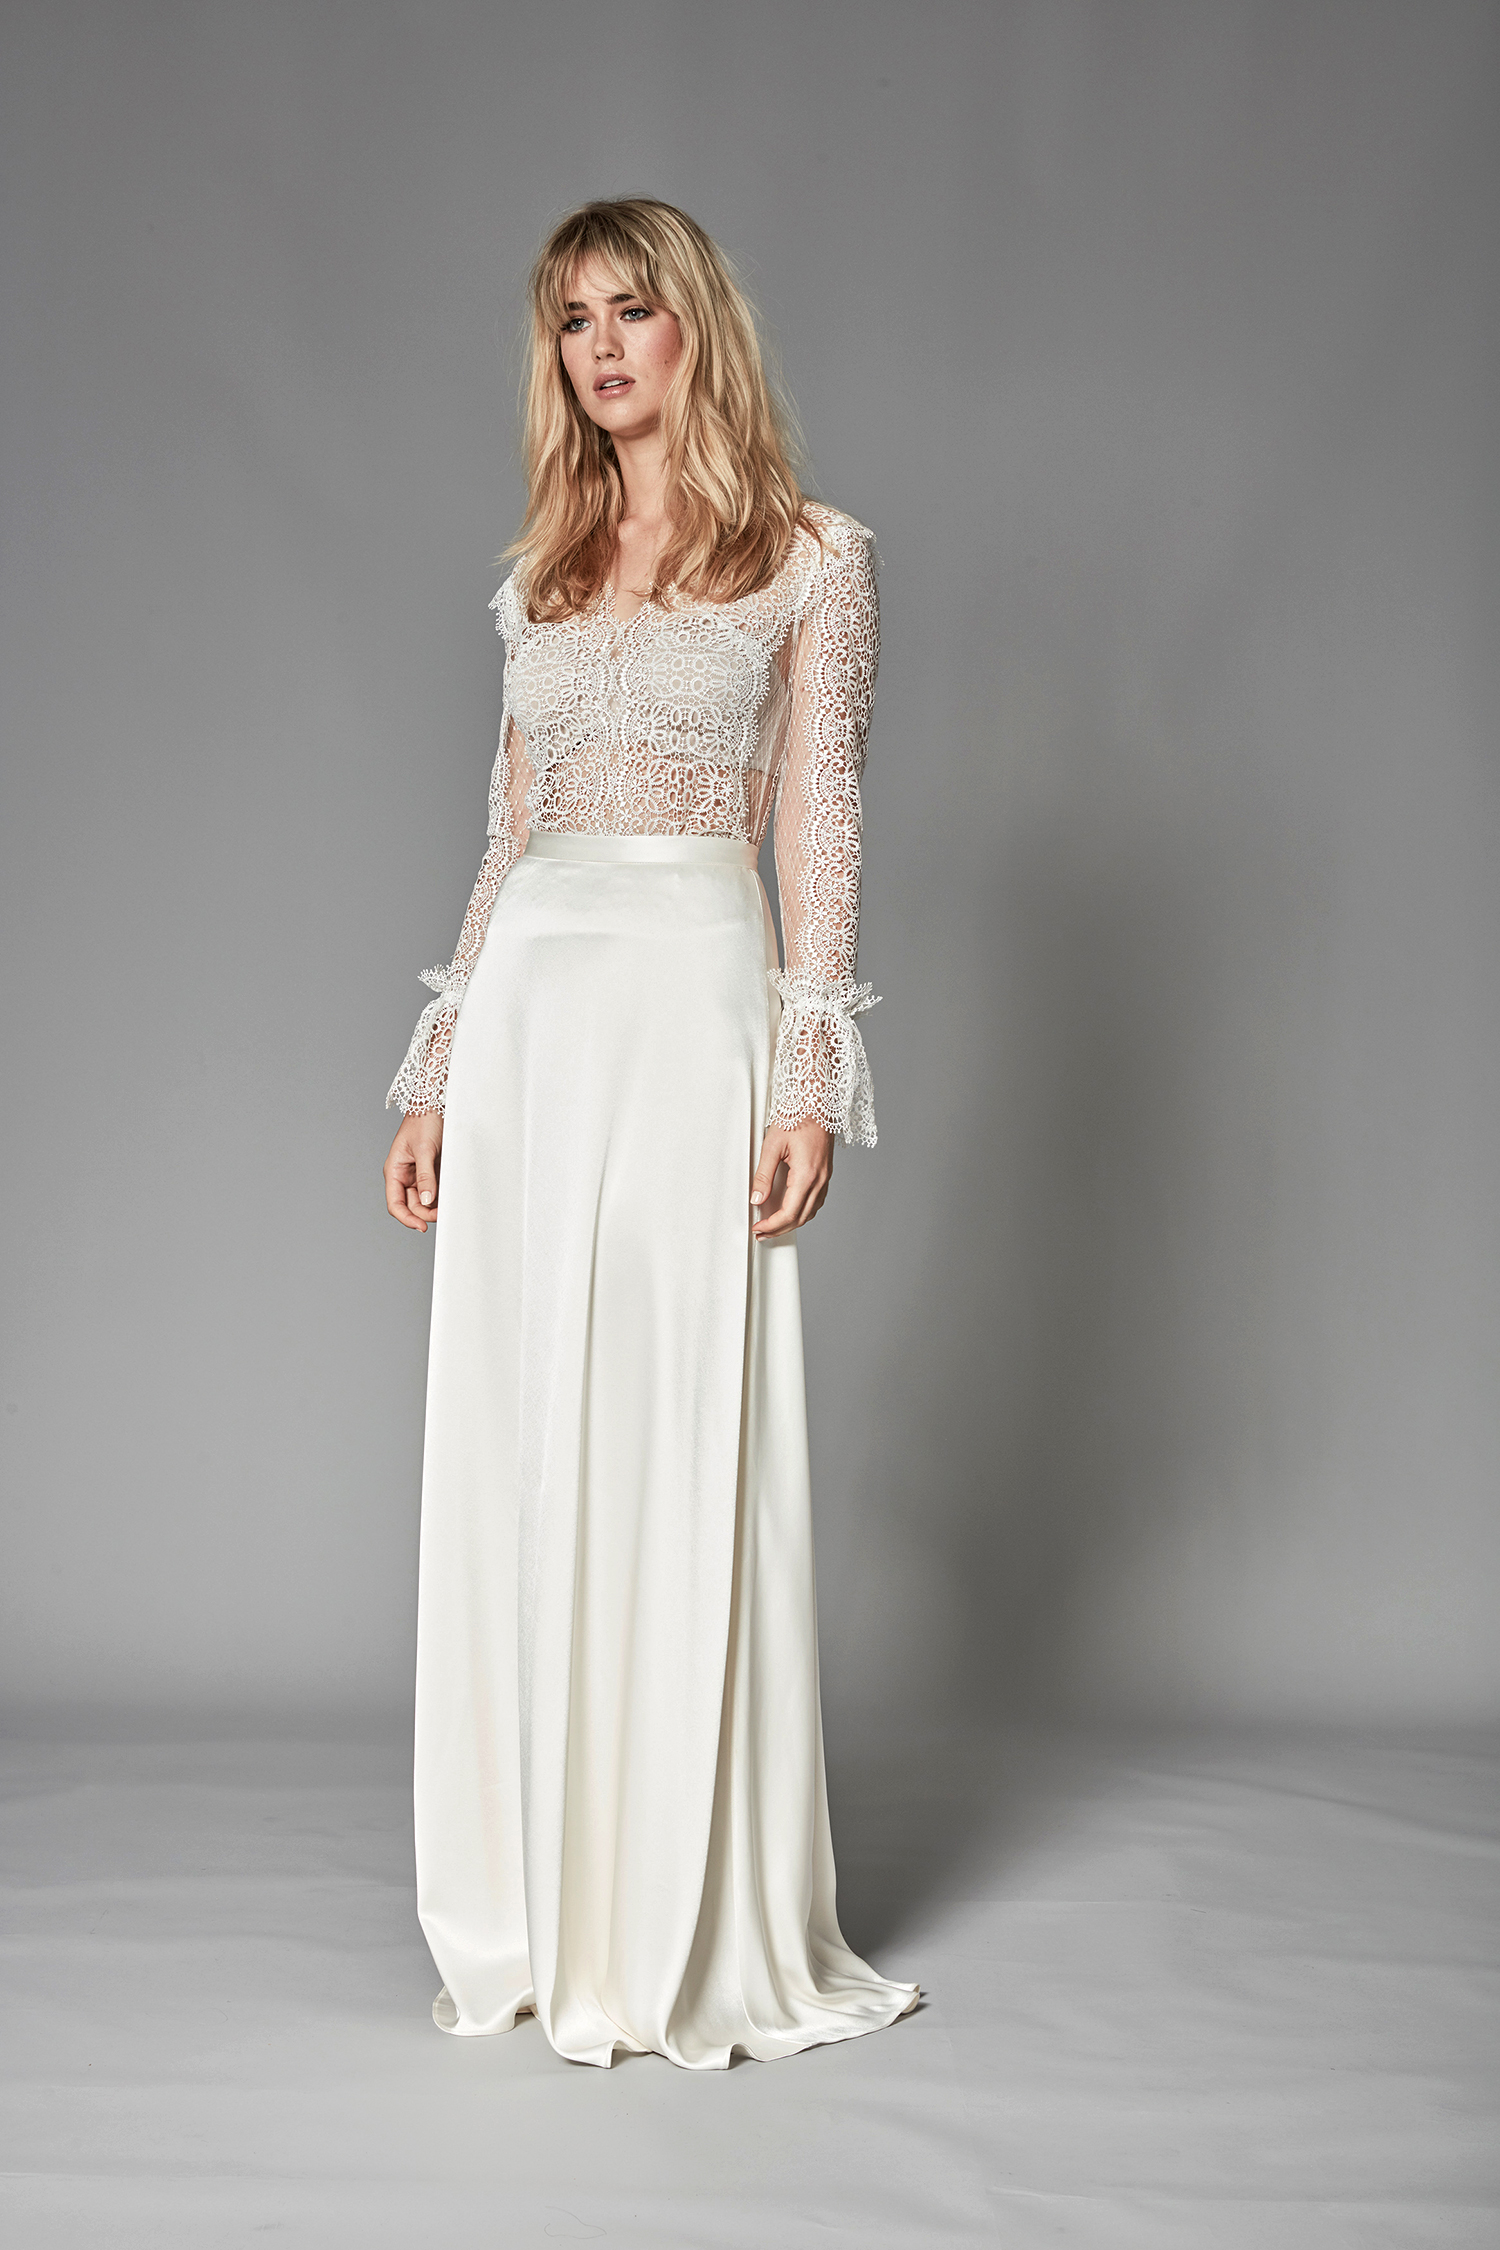 catherine deane fall 2018 long-sleeved sheer lace bodice